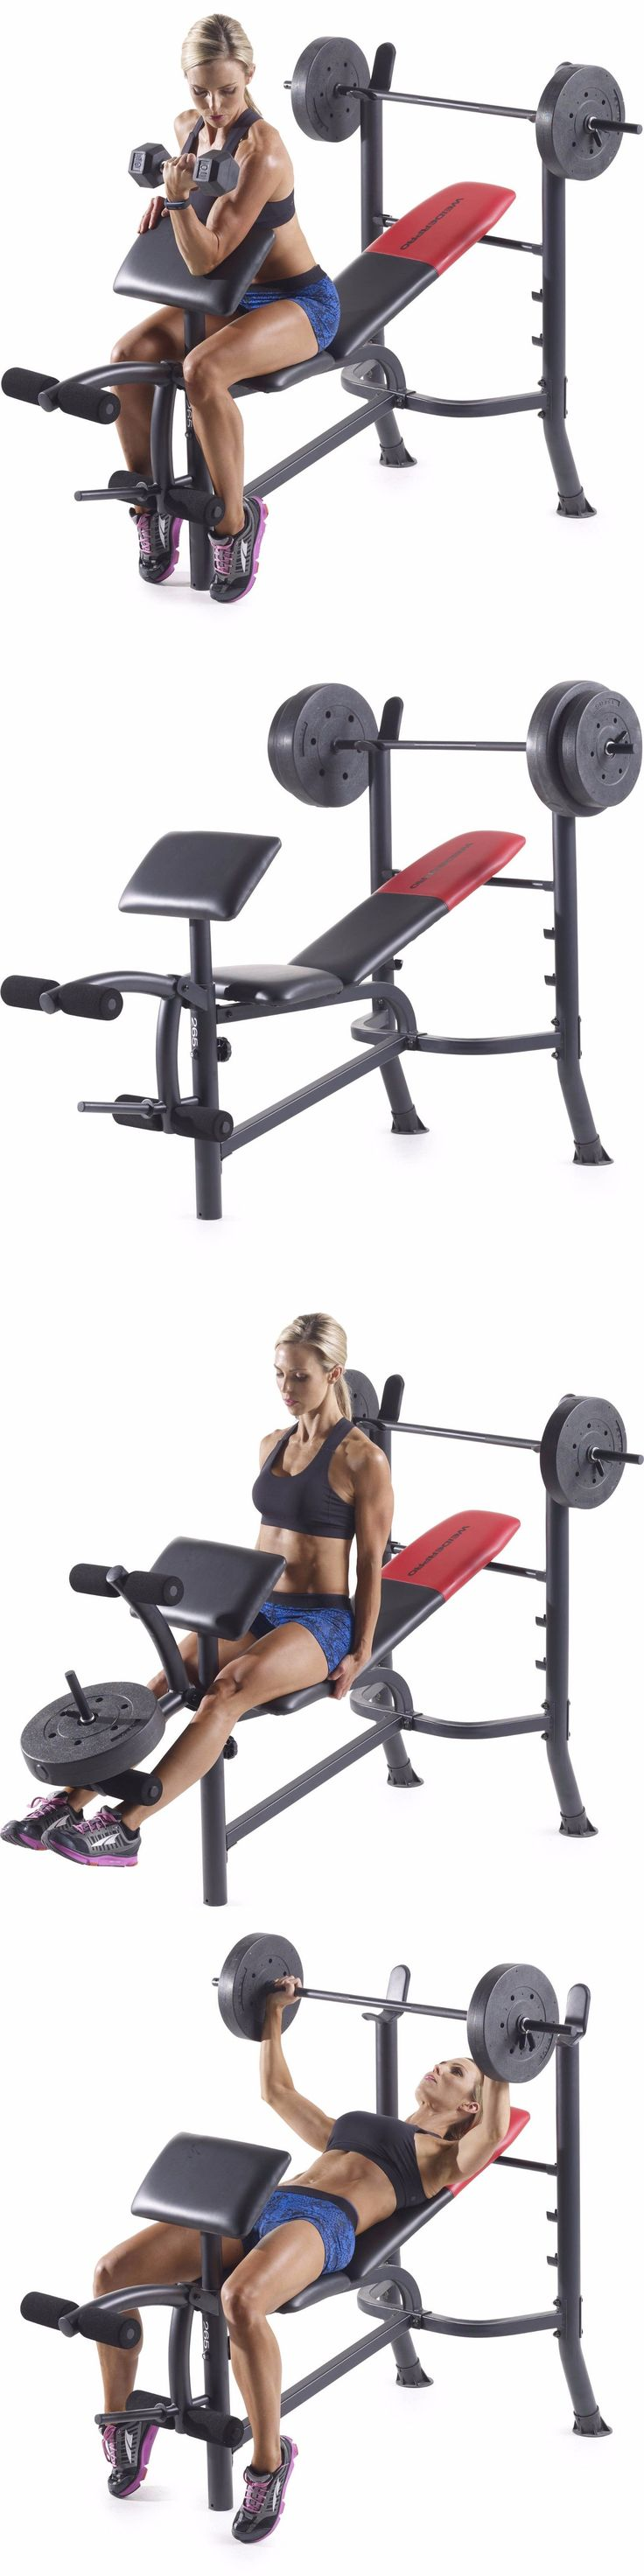 Bench Press Abs Part - 32: Benches 15281: Weider Pro 265 Standard Bench With 80 Lb Vinyl Weight Set  Workout Gym